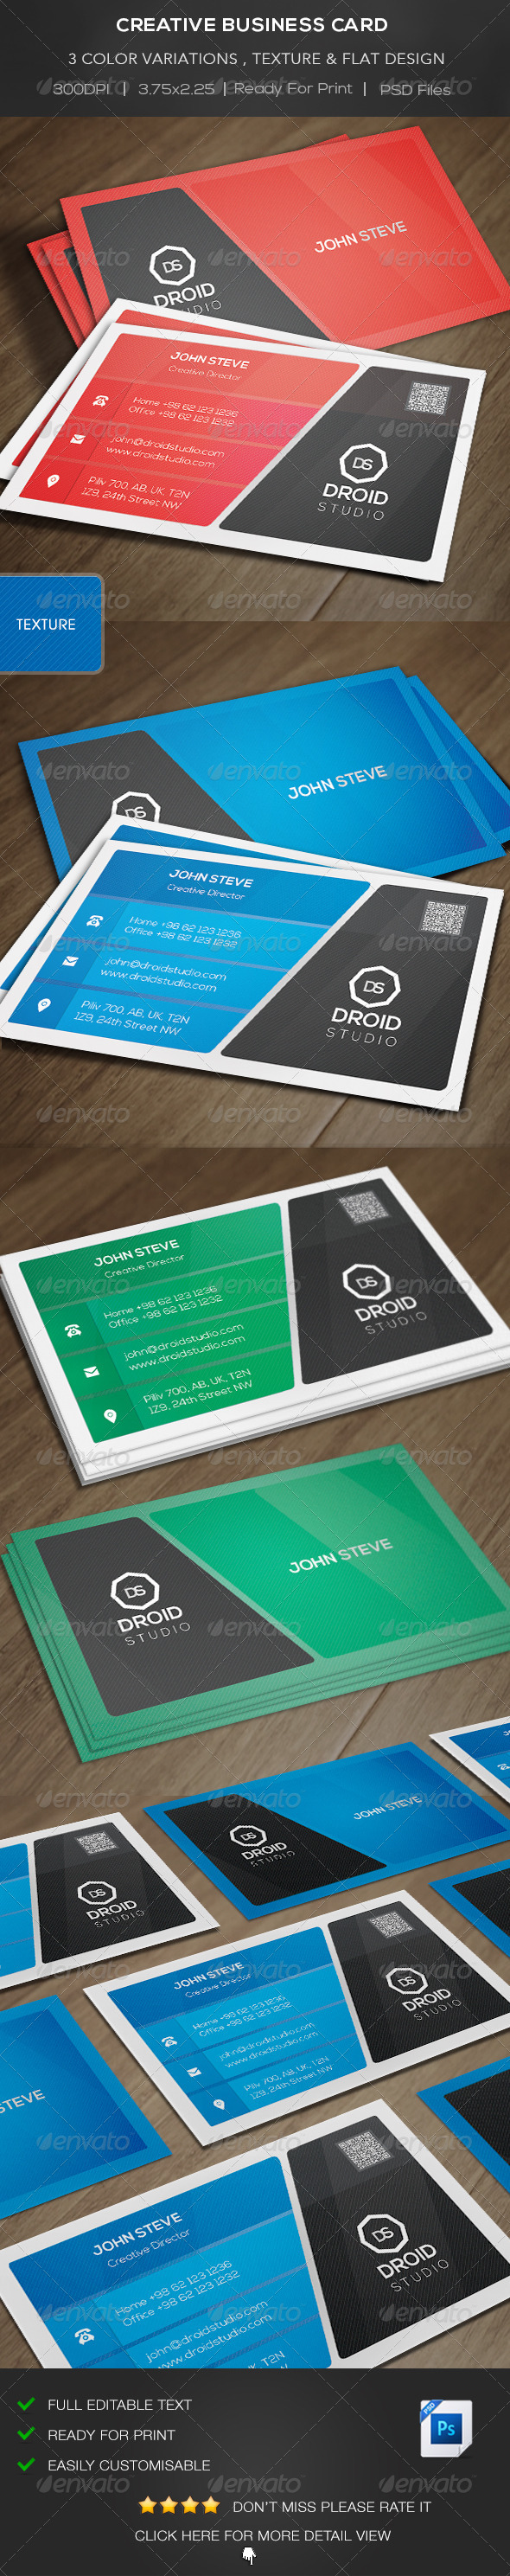 GraphicRiver Creative Business Card 8145753